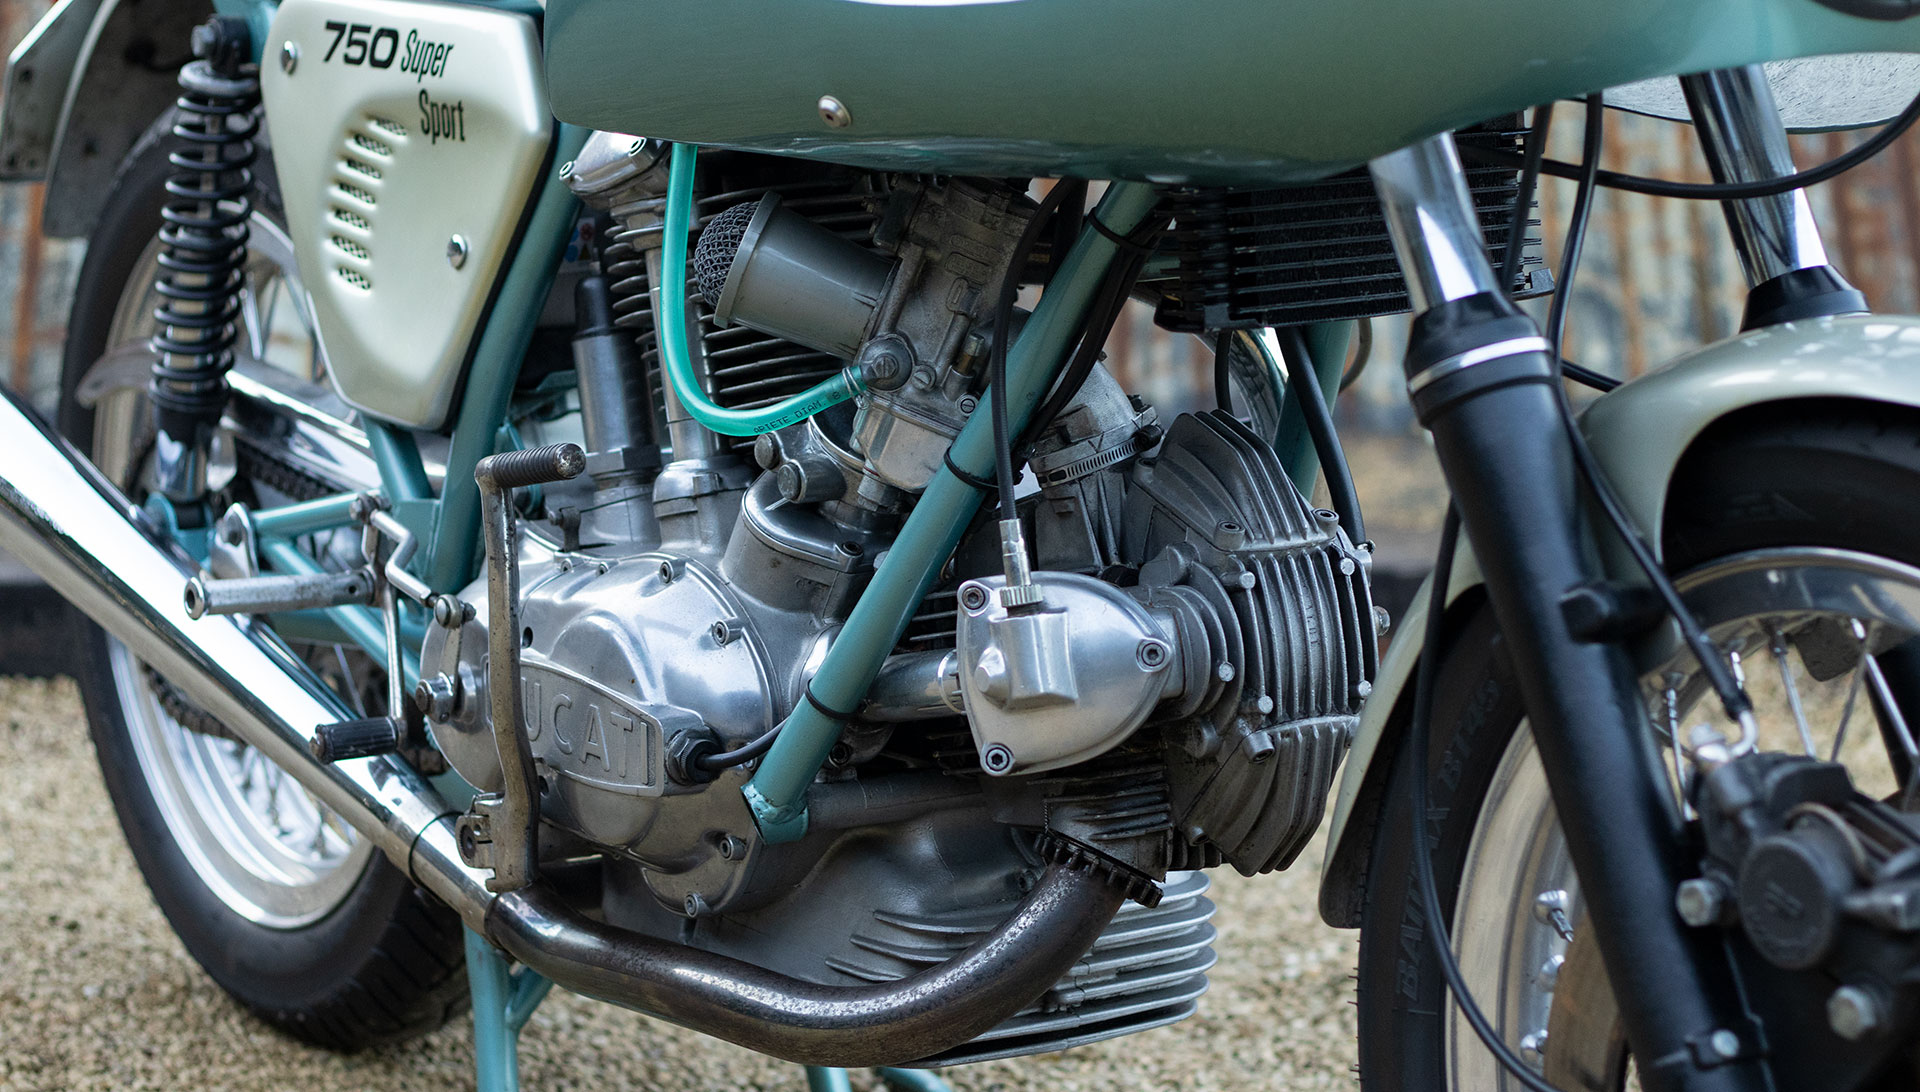 1974 Ducati 750 SS 'Green Frame' for sale at The Classic Motor Hub